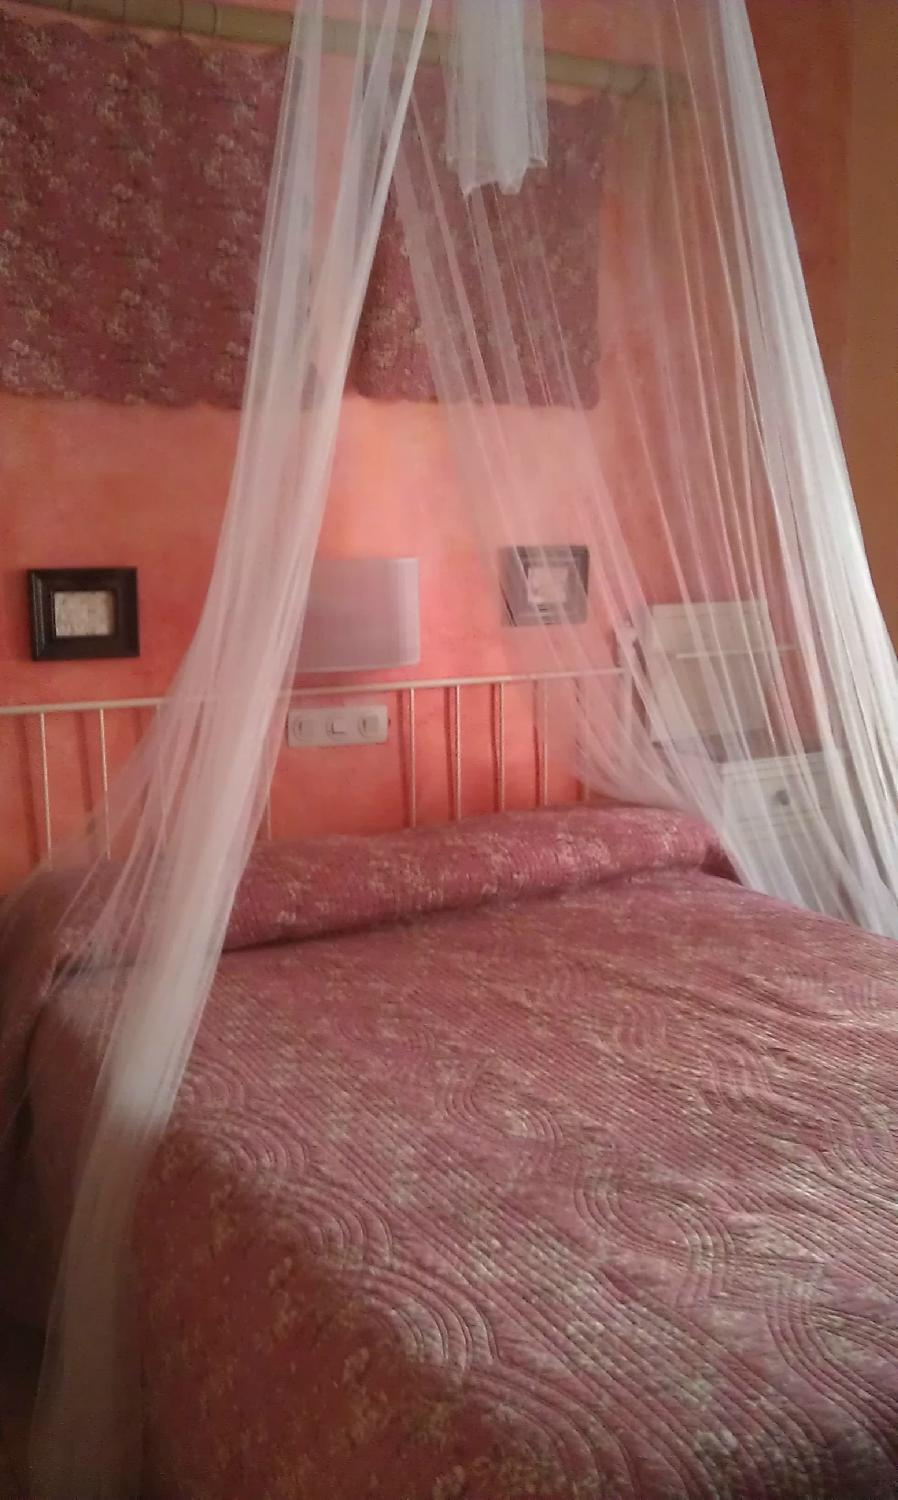 Ribes de Freser Spain  City new picture : Hotel Prats Ribes de Freser, Spain UPDATED 2016 Reviews ...